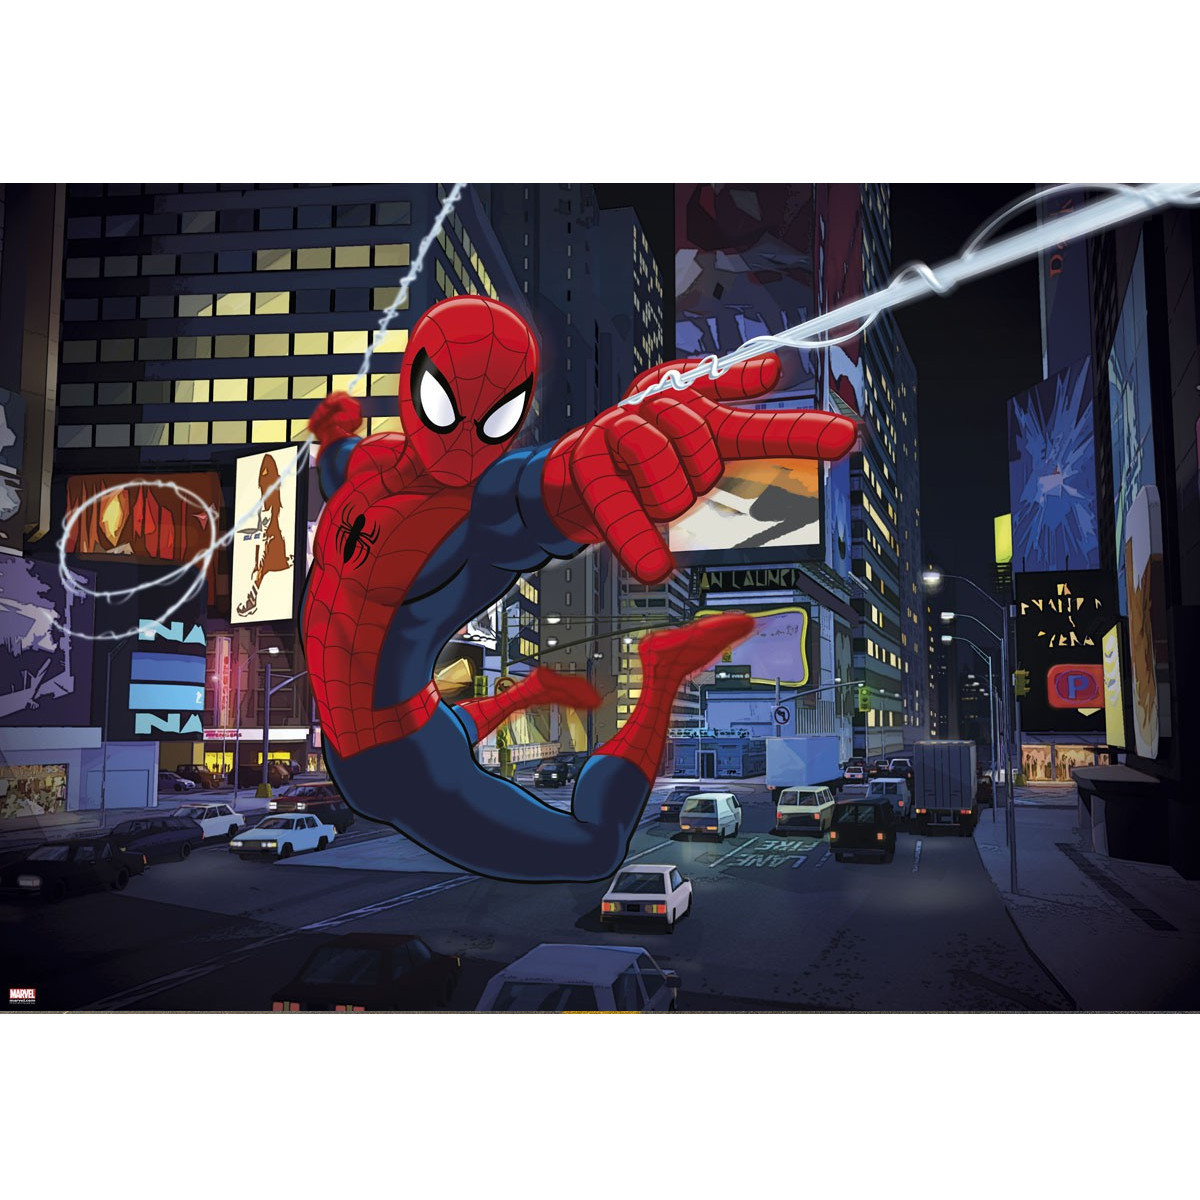 Poster géant Spiderman Times square Marvel 184X127 CM